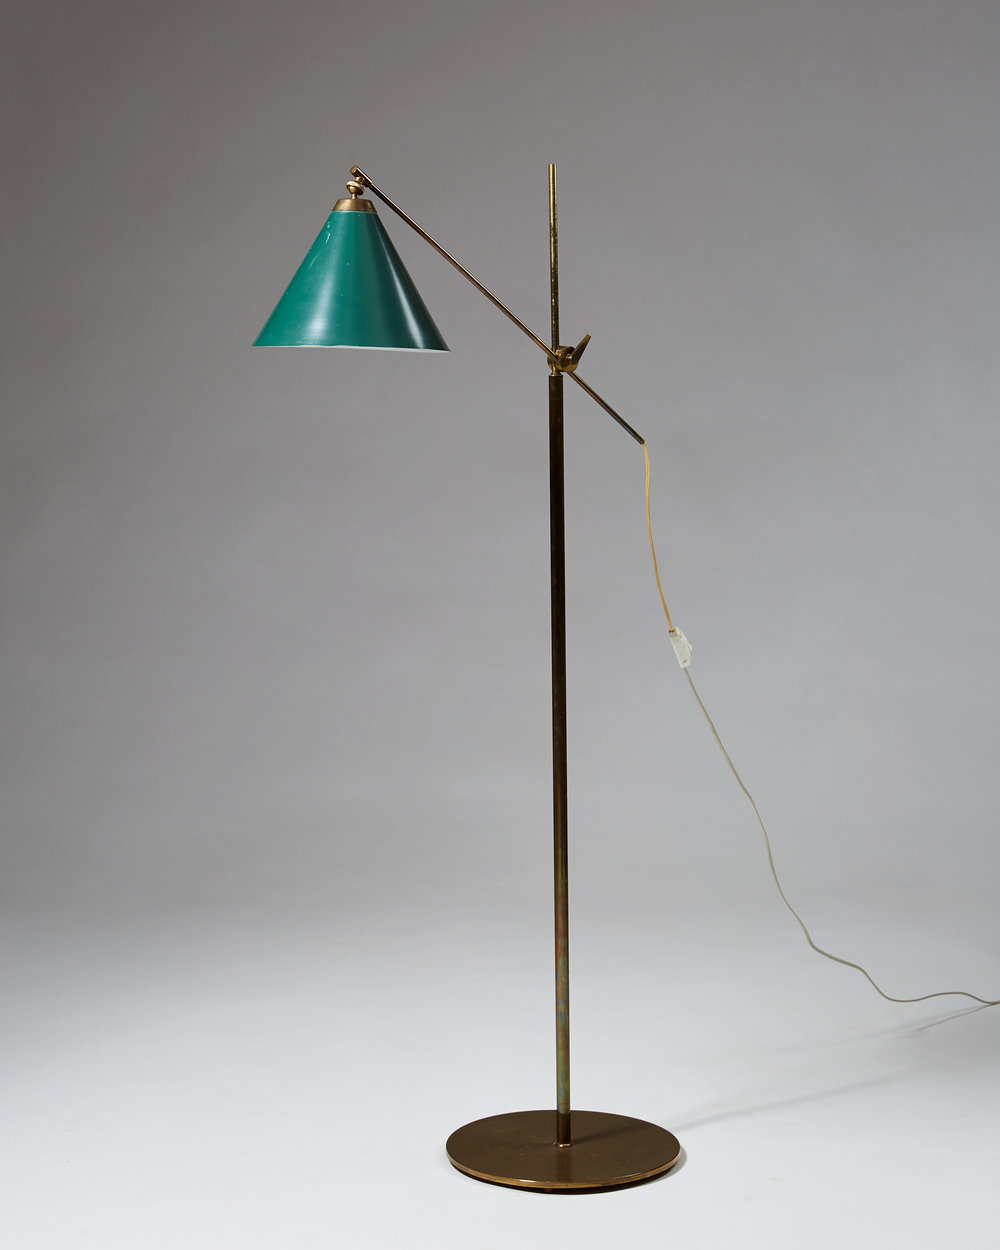 Poul Dinesen  Floor lamp Denmark, 1960's Brass and lacquered metal. Height: 137 cm Shade: 32 cm